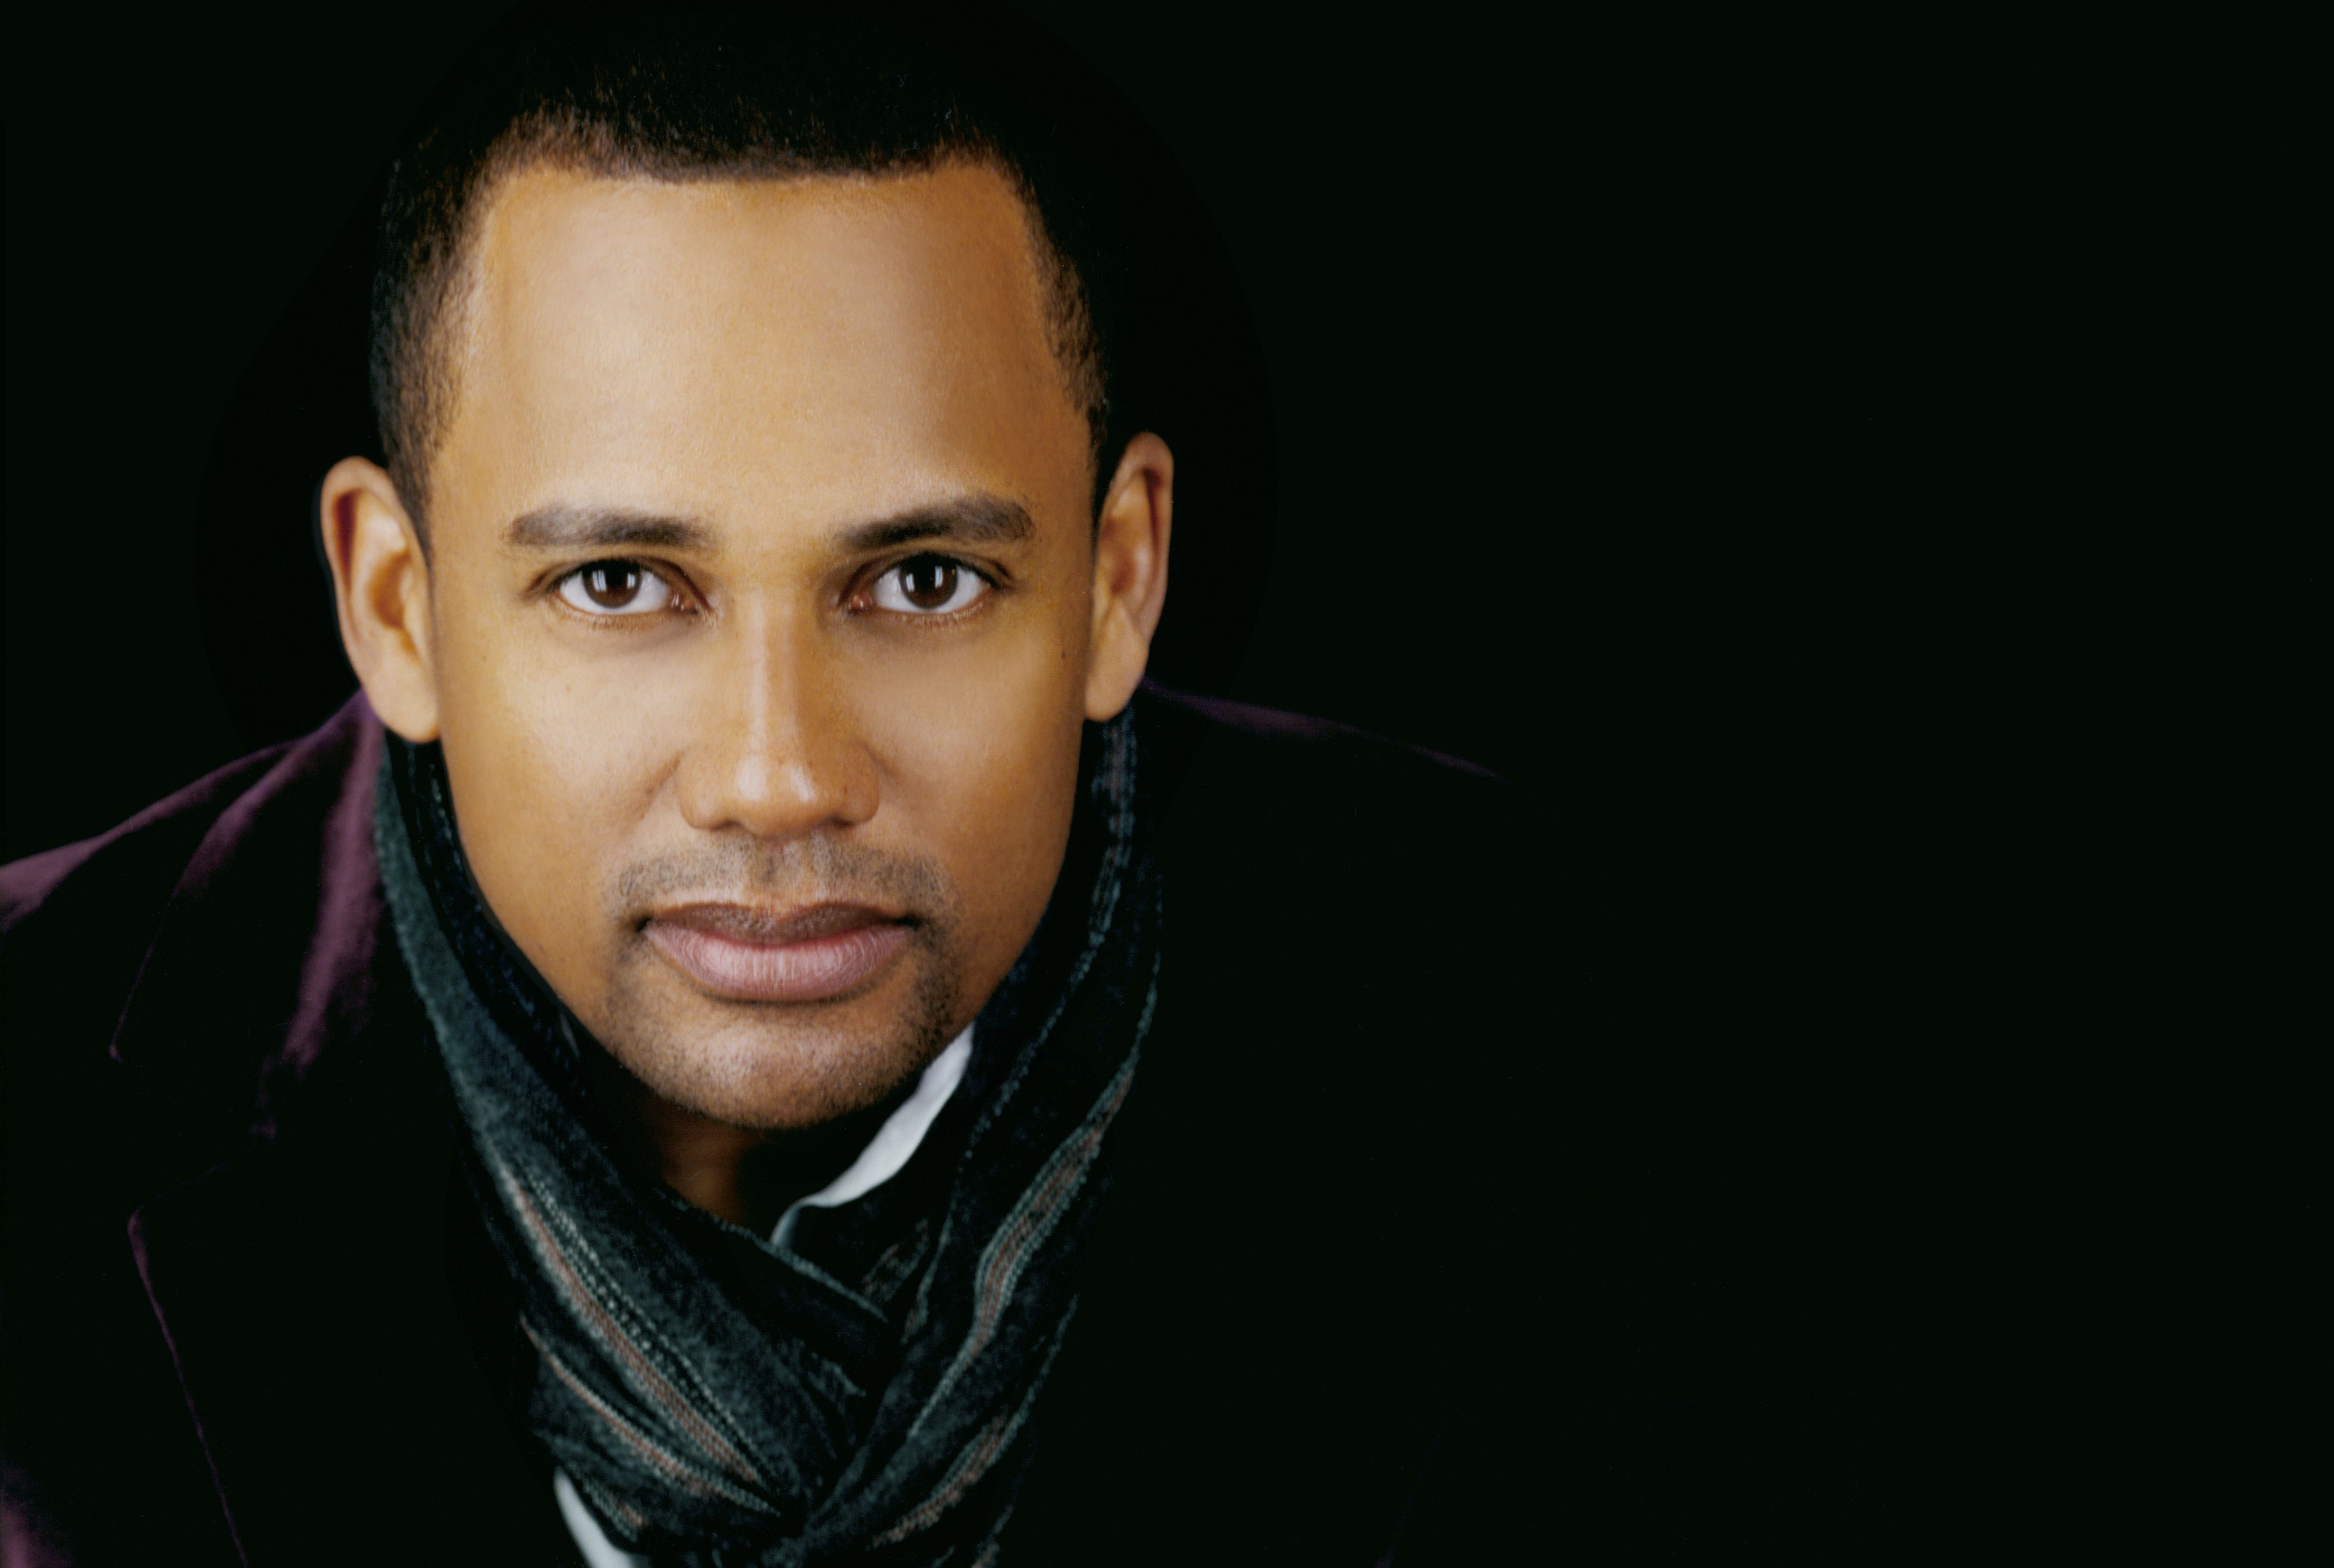 How High is the Cost of Being You? Hill Harper on Wealth, Debt, and Inspiration